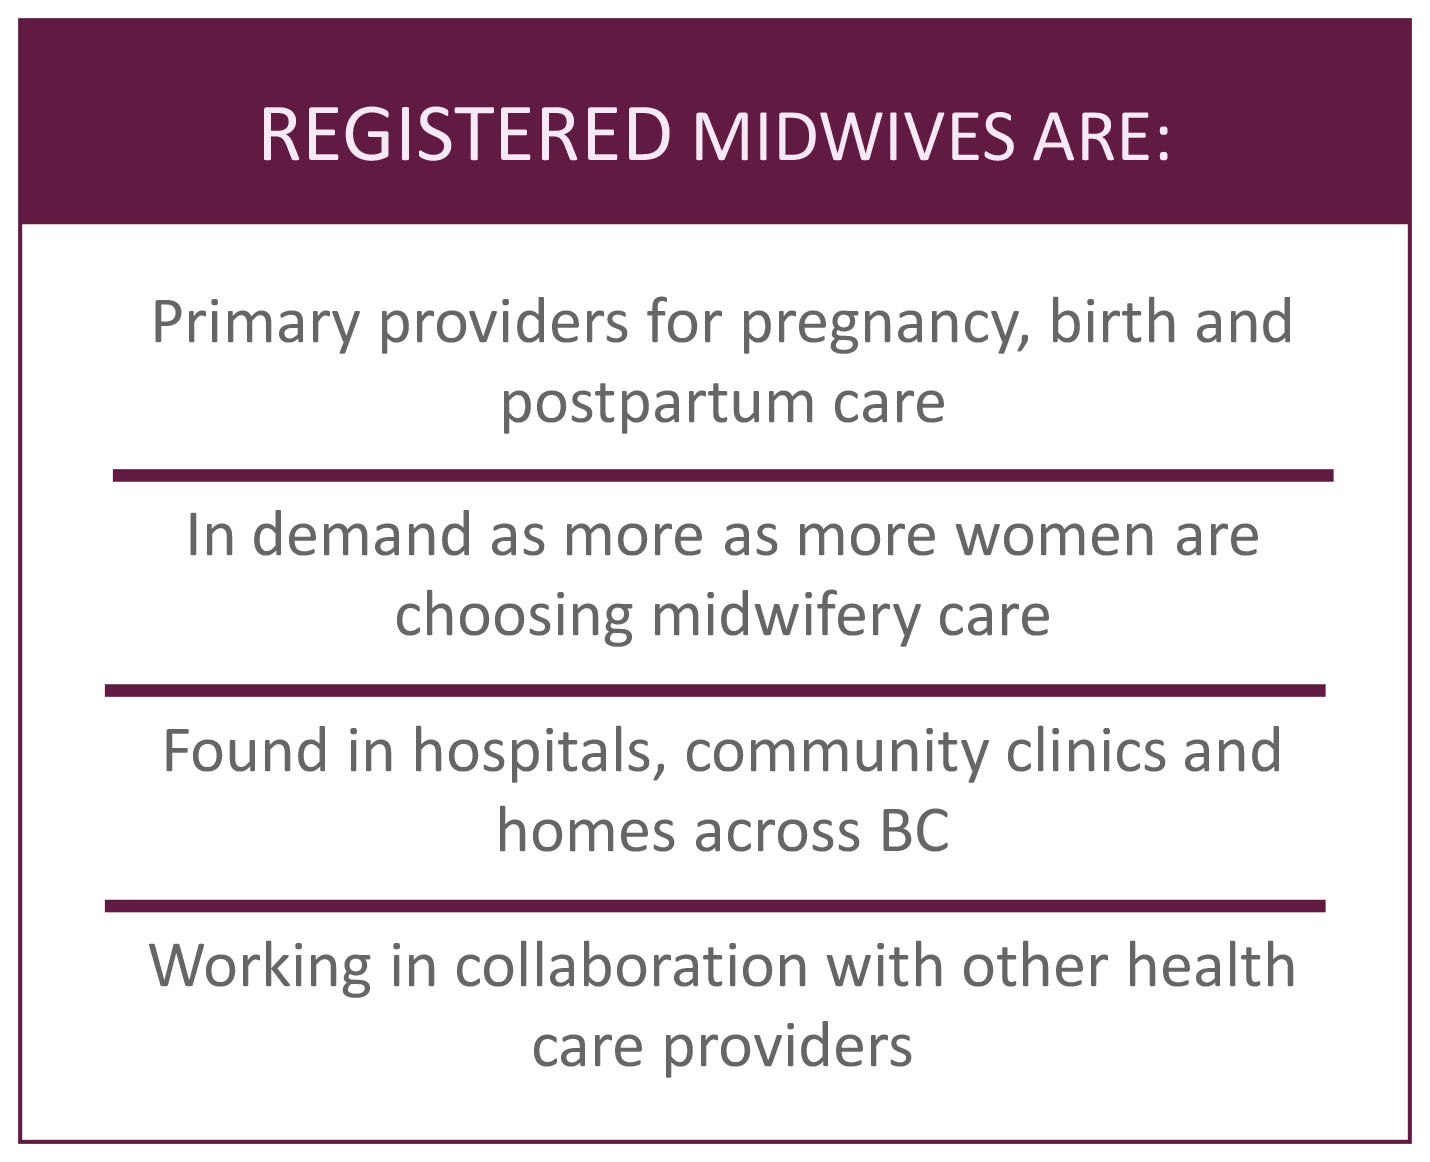 Midwives_are_-_1.jpg